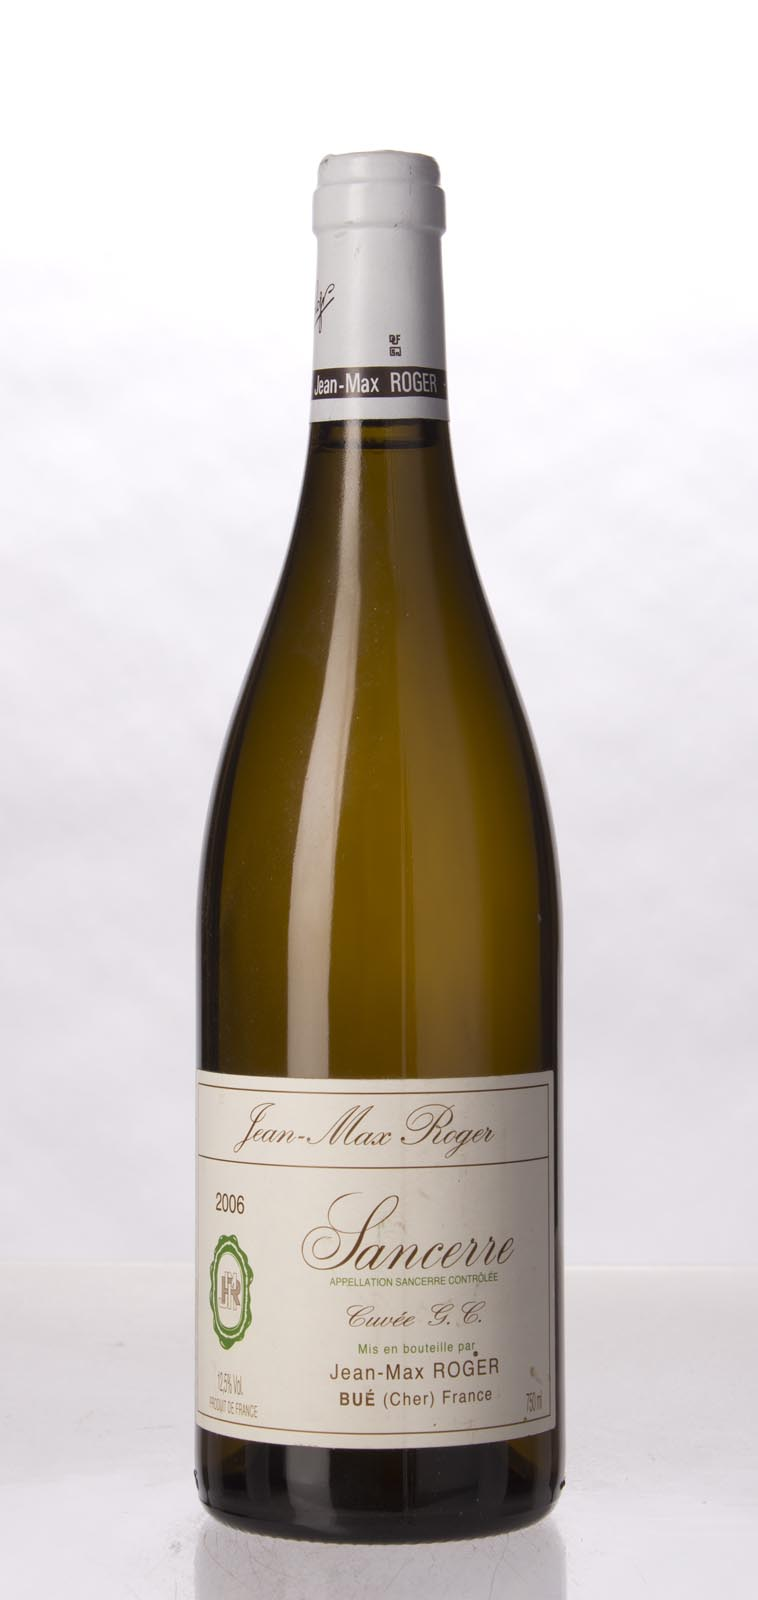 Jean Max Roger Sancerre Cuvee G. C. 2006, 750mL () from The BPW - Merchants of rare and fine wines.